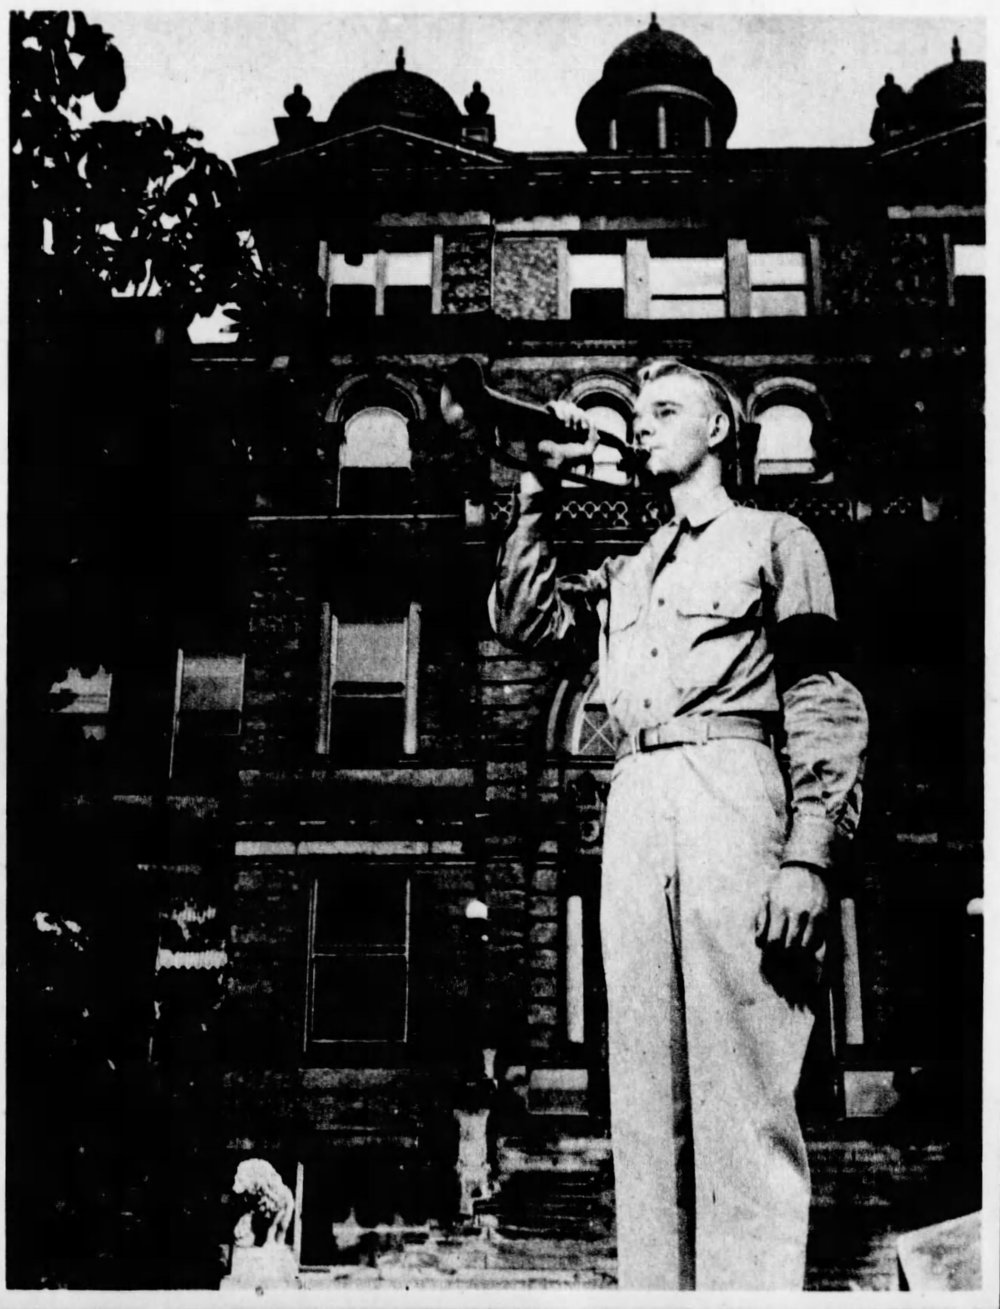 Private William B. Fleming in front of the original McMicken Hall, 1943 [via the Cincinnati Enquirer]